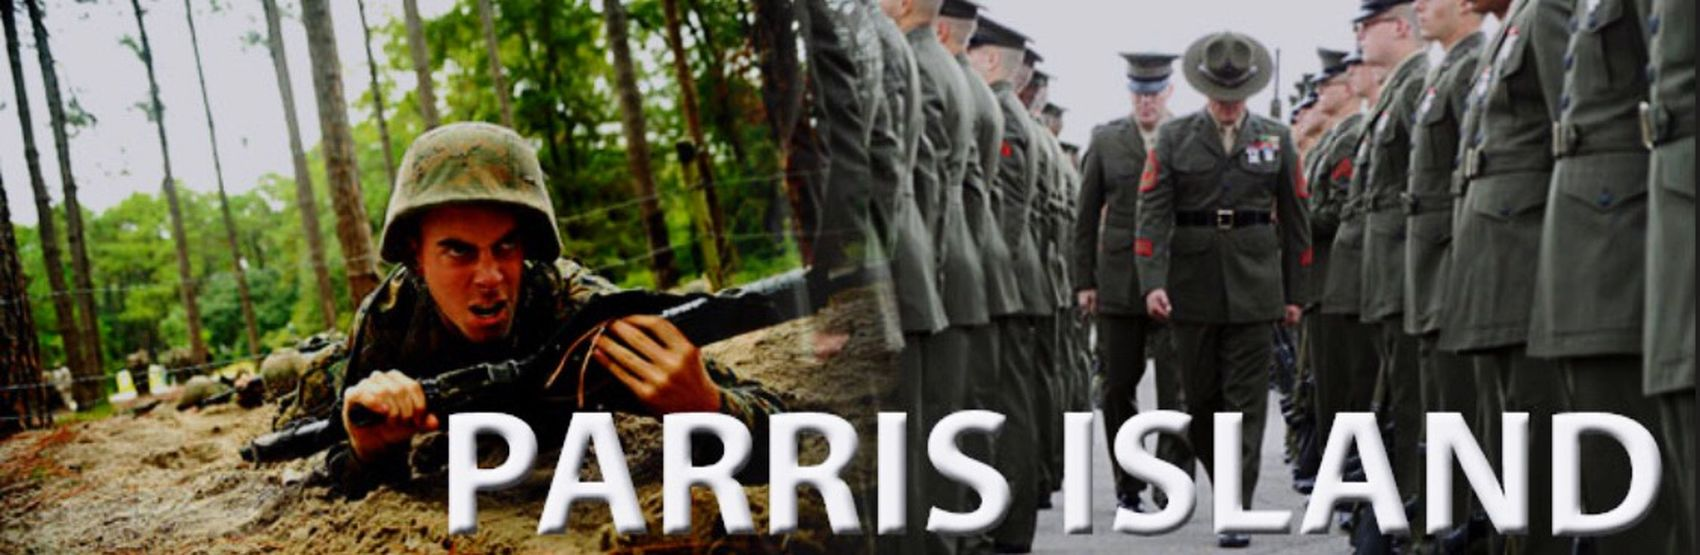 Today's Parris Islands 100th birthday. USA Us Military USMC Parris Island 1 Century 100happydays